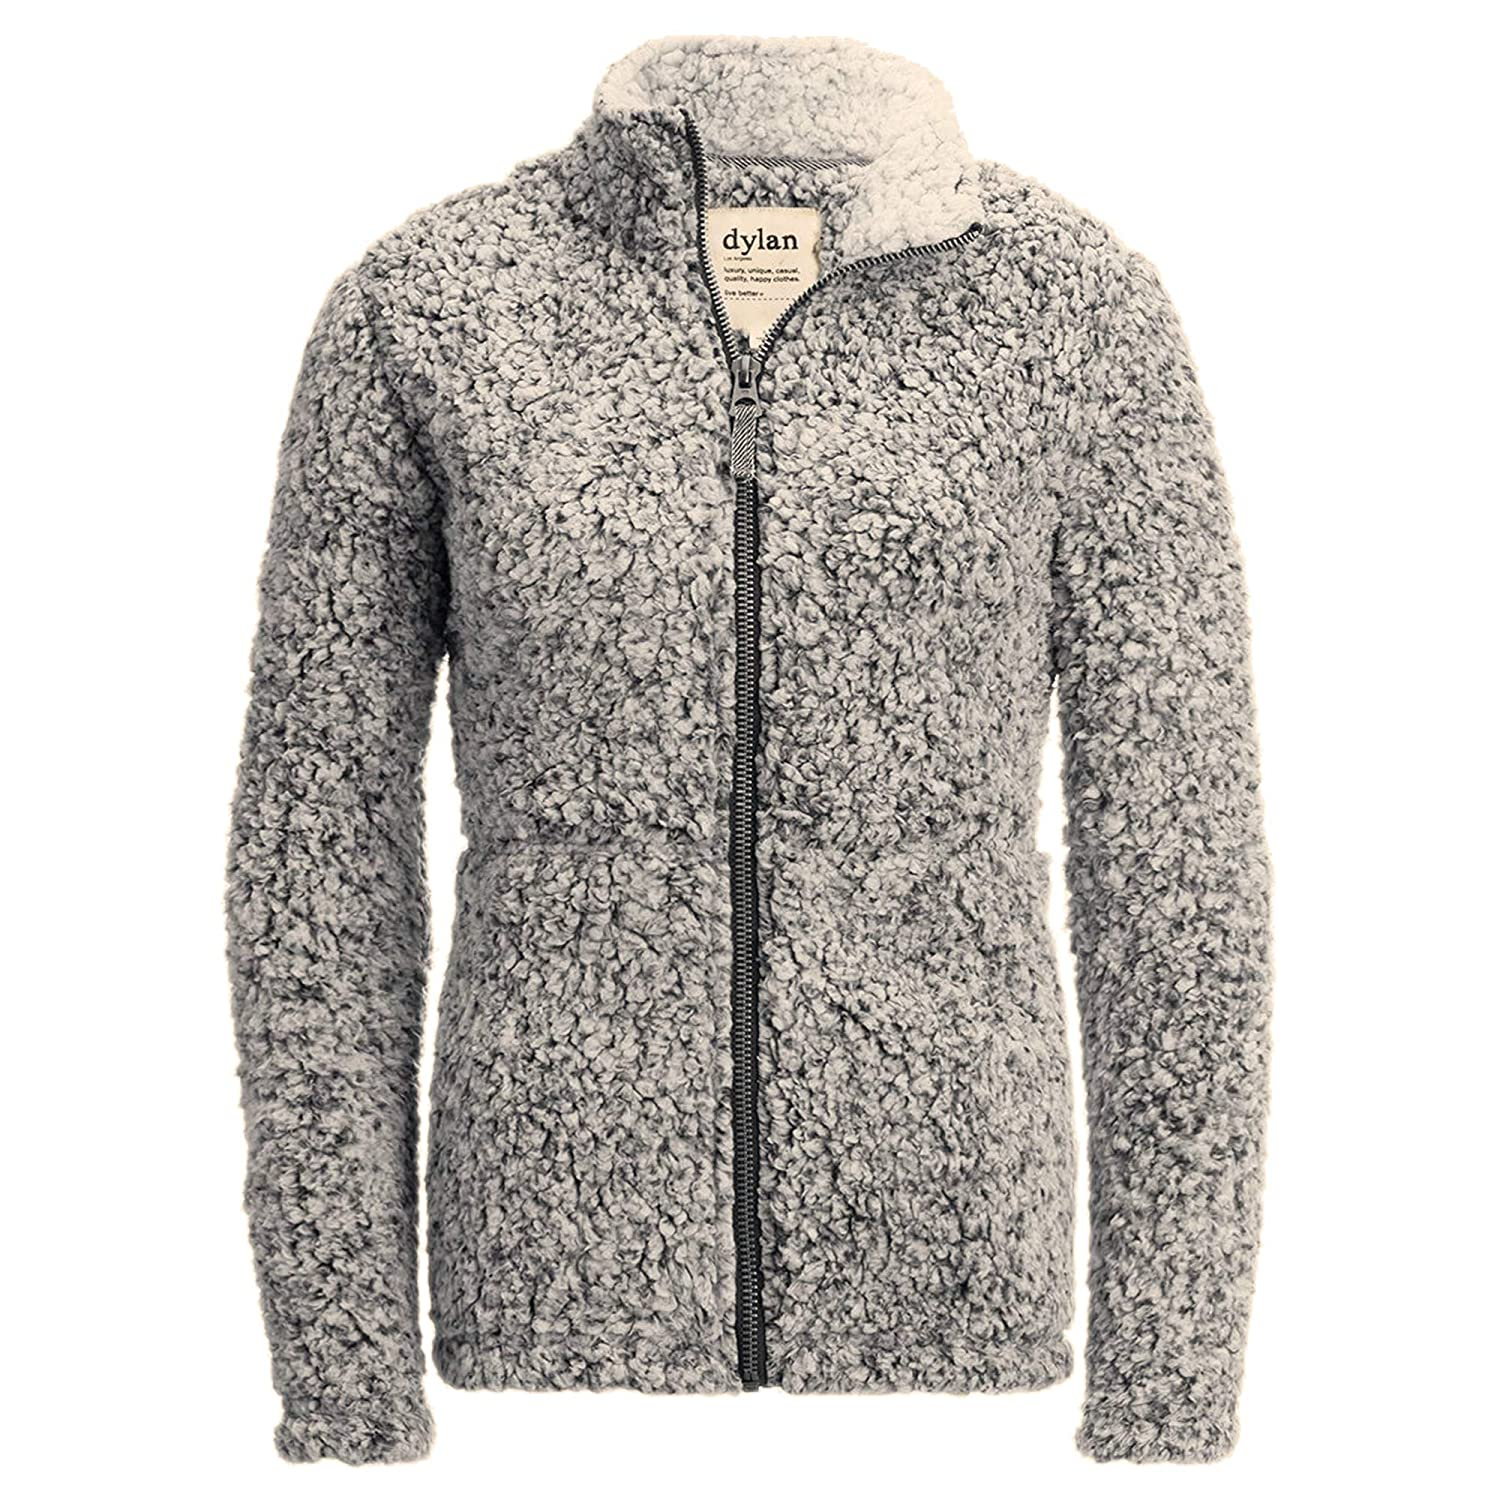 18a11e436 Dylan Women's Frosty Tip Stadium Pullover Sherpa Jacket